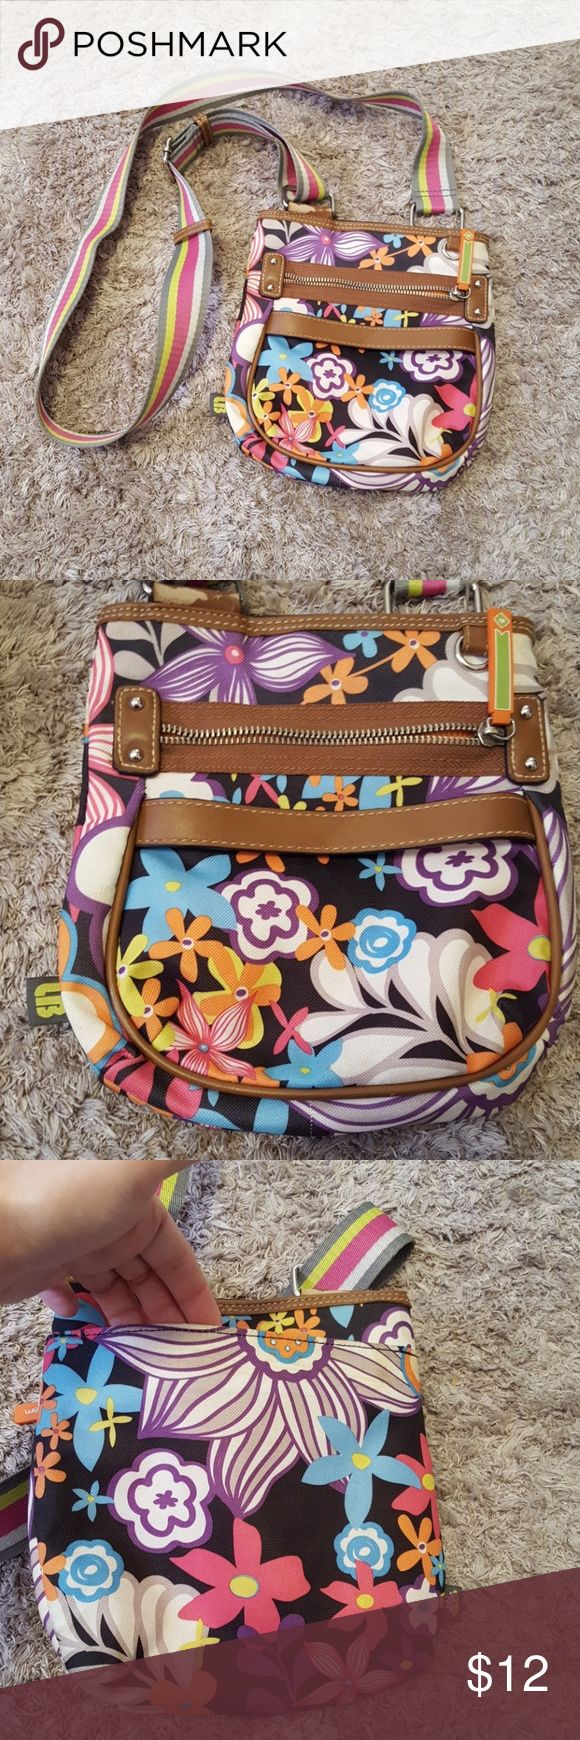 Preloved cross body Lily Bloom purse! One zipper compartment inside and one outside. Also, one open compartment on the back outside area. See pictures for approximate measurements. Preloved condition. Some wear on hardware, see picture. lily bloom Bags Crossbody Bags